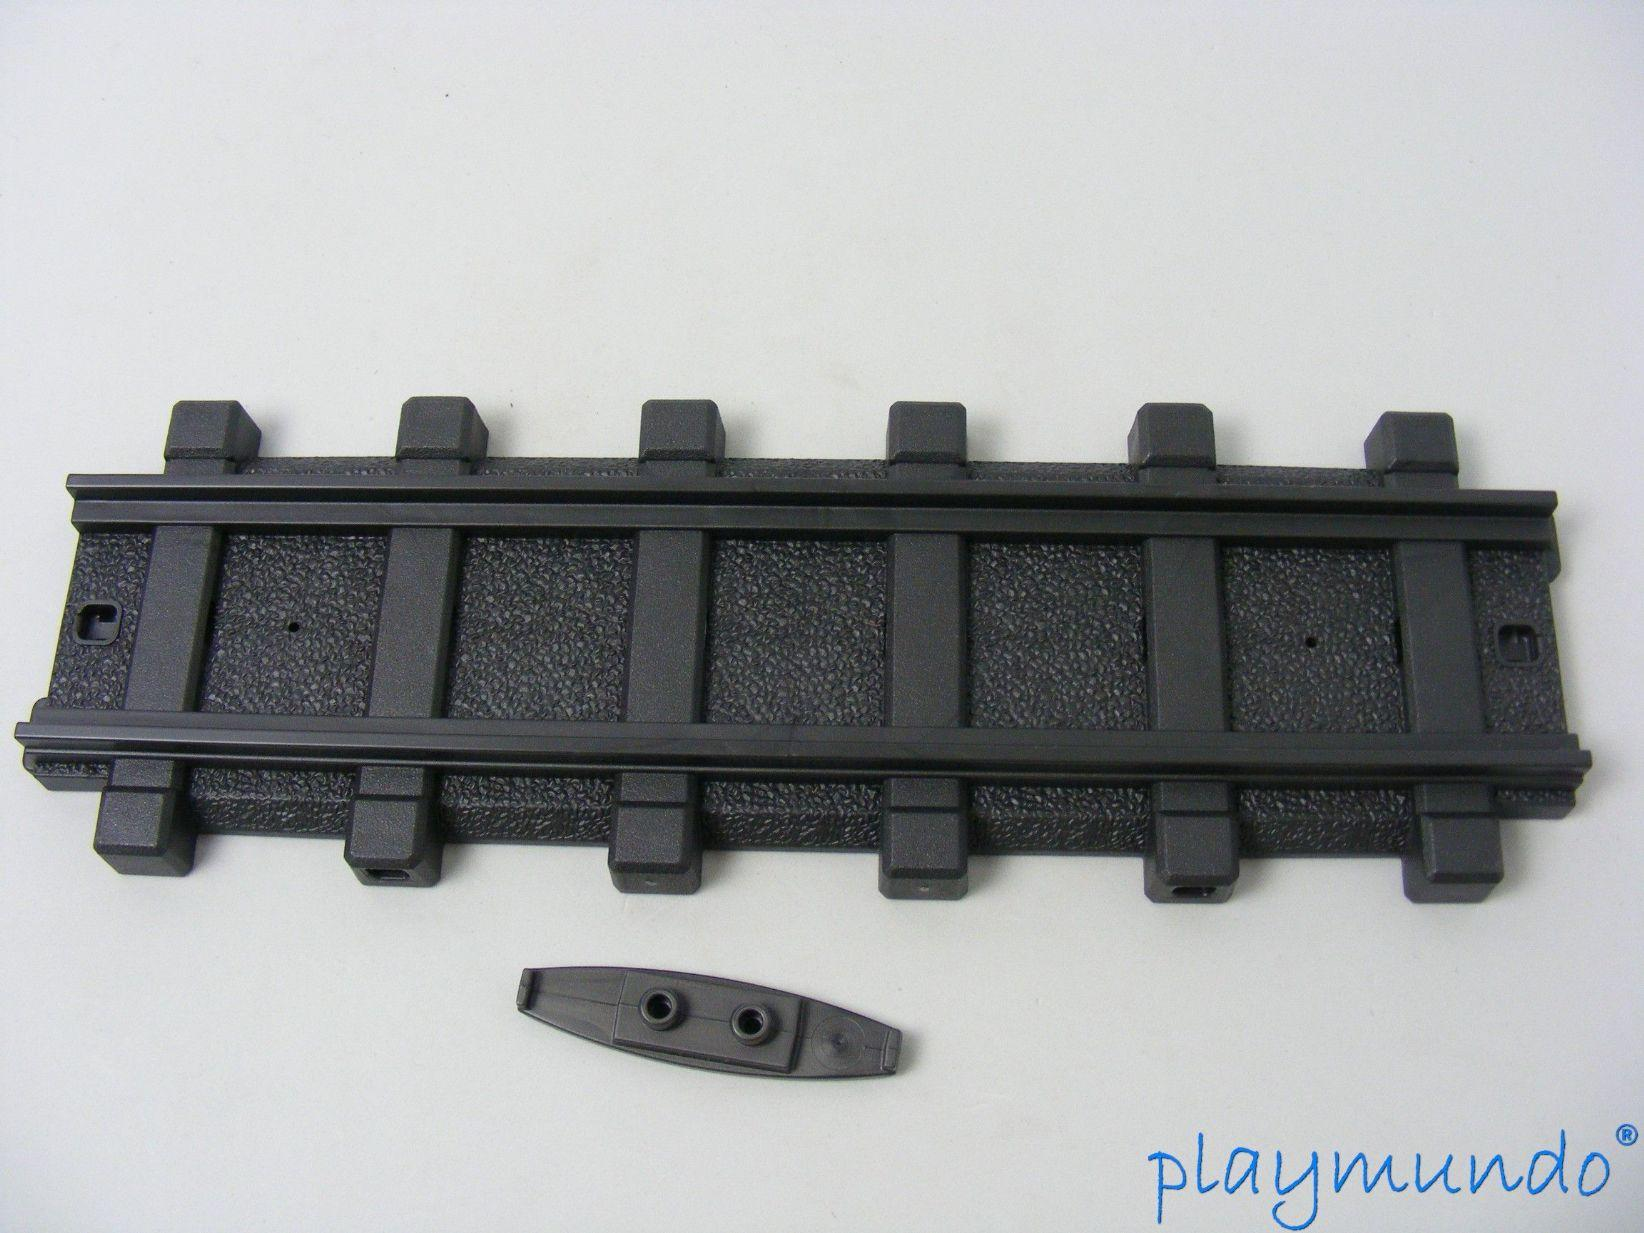 PLAYMOBIL 30 03 5380 VIA RECTA TREN FERROCARRIL